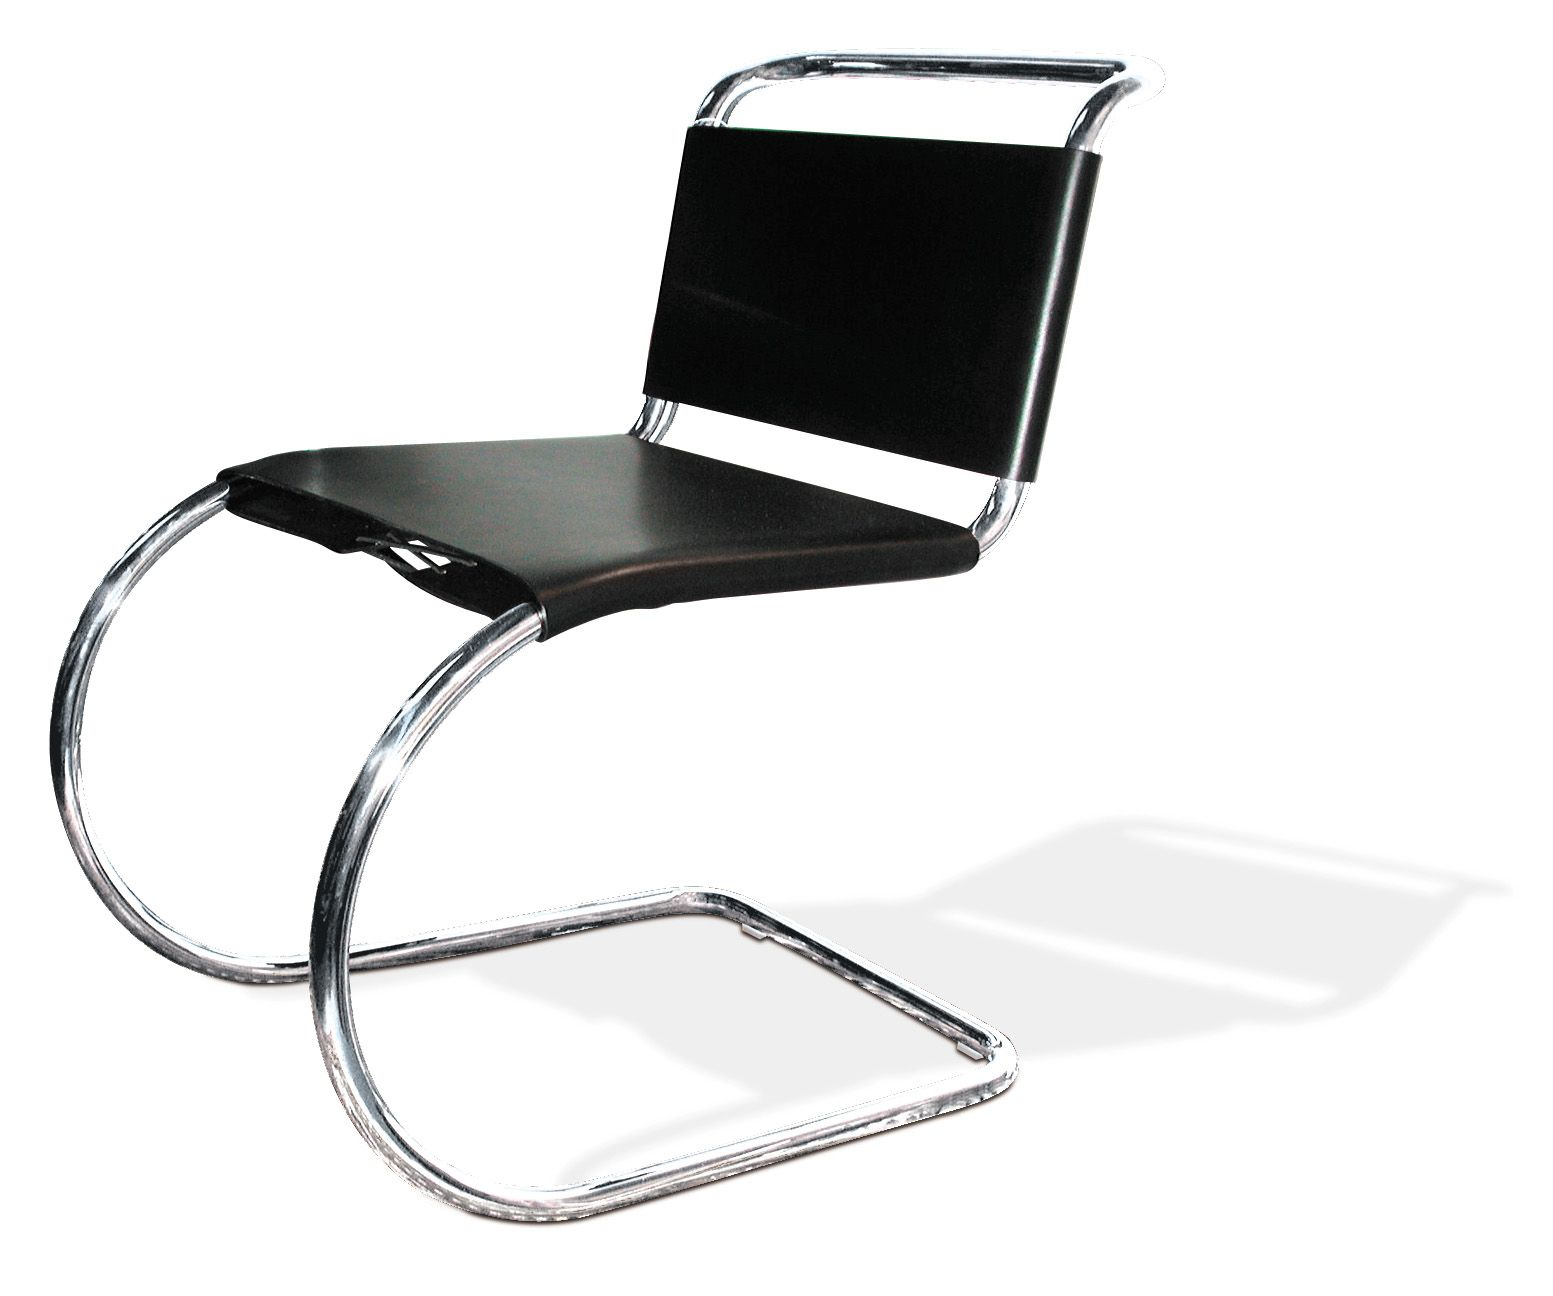 Mies Der Rohe Möbel mies der rohe chair ludwig mies der